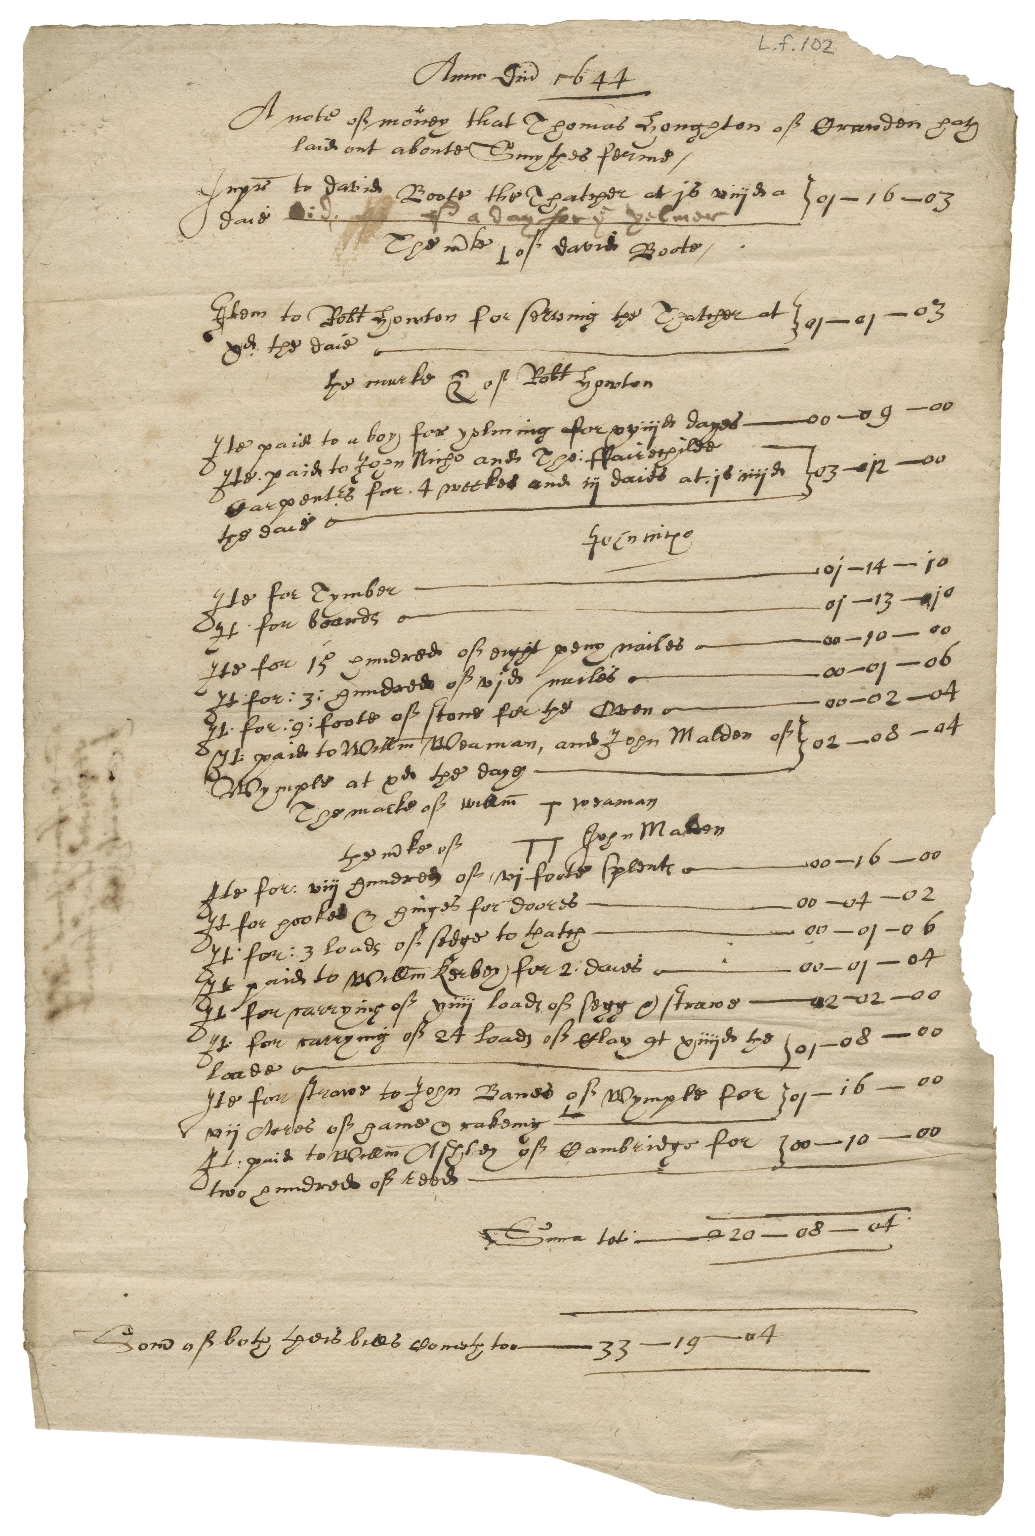 Bill for repairs for Smith's farm from Thomas Houghton of Croydon, Cambridgeshire